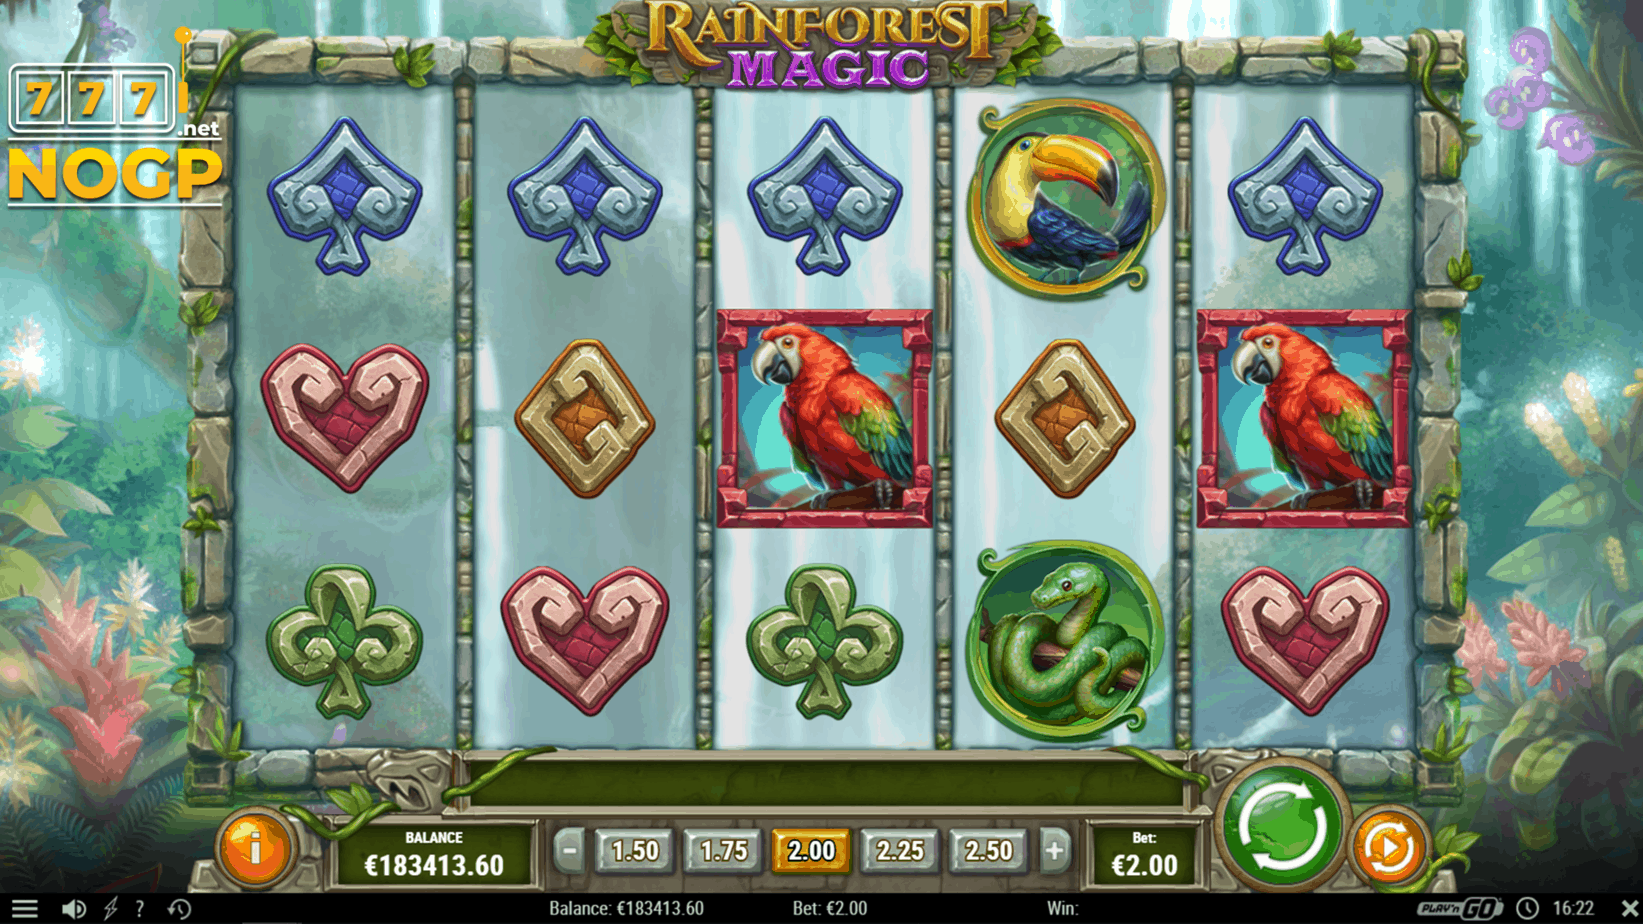 Rainforest Magic video slot screenshot